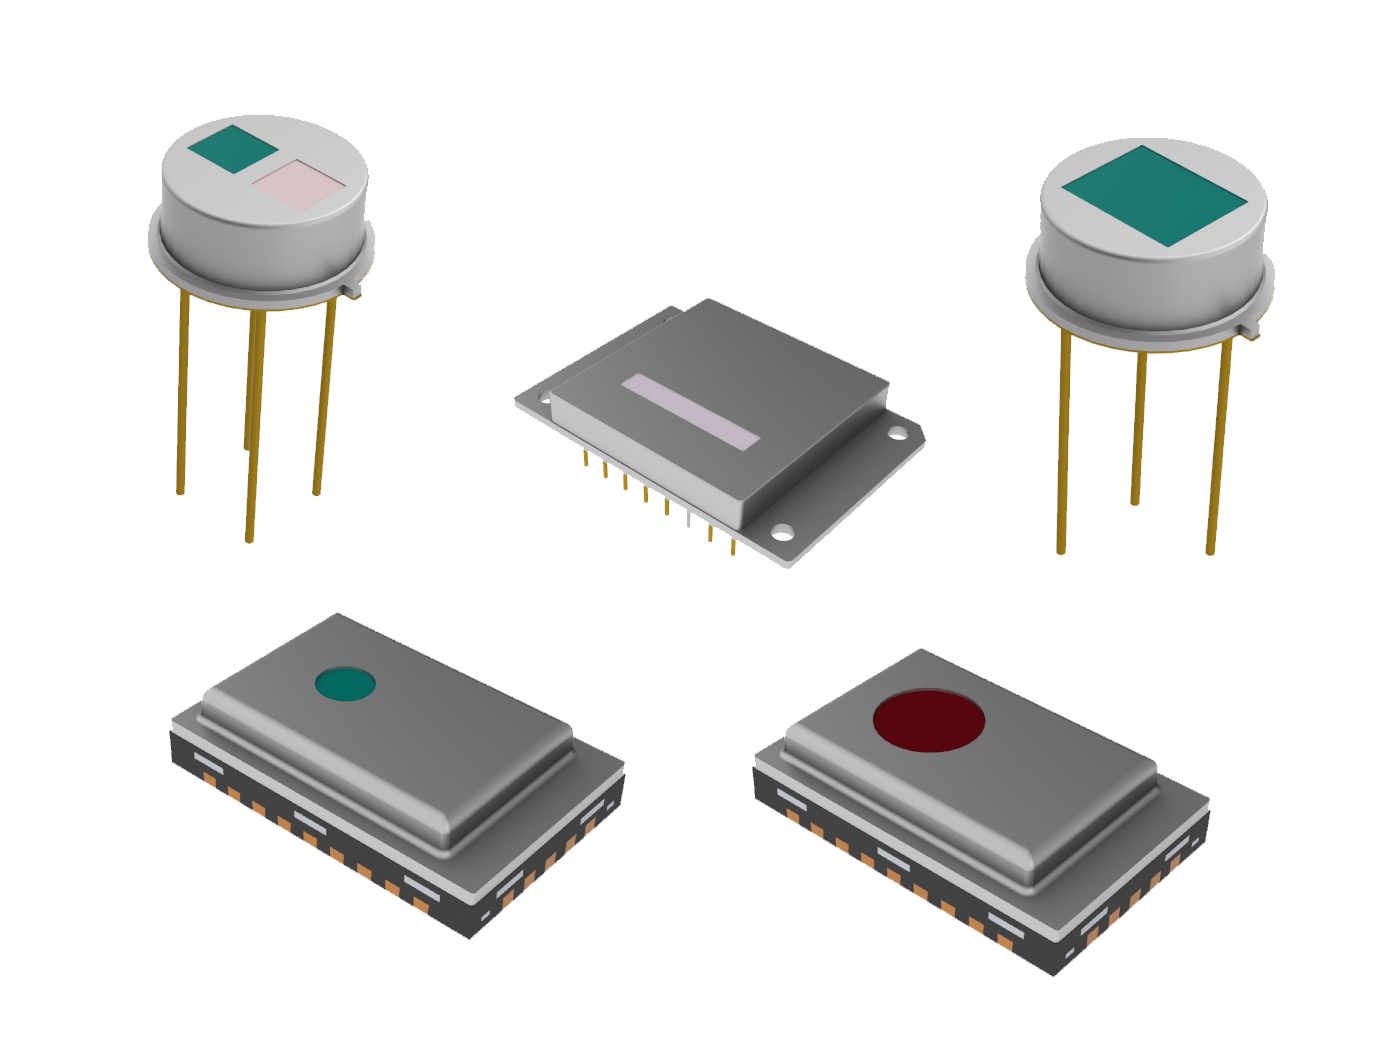 Pyroelectric passive infrared (PIR) sensors allow for easy integration, configuration and more design-in possibilities